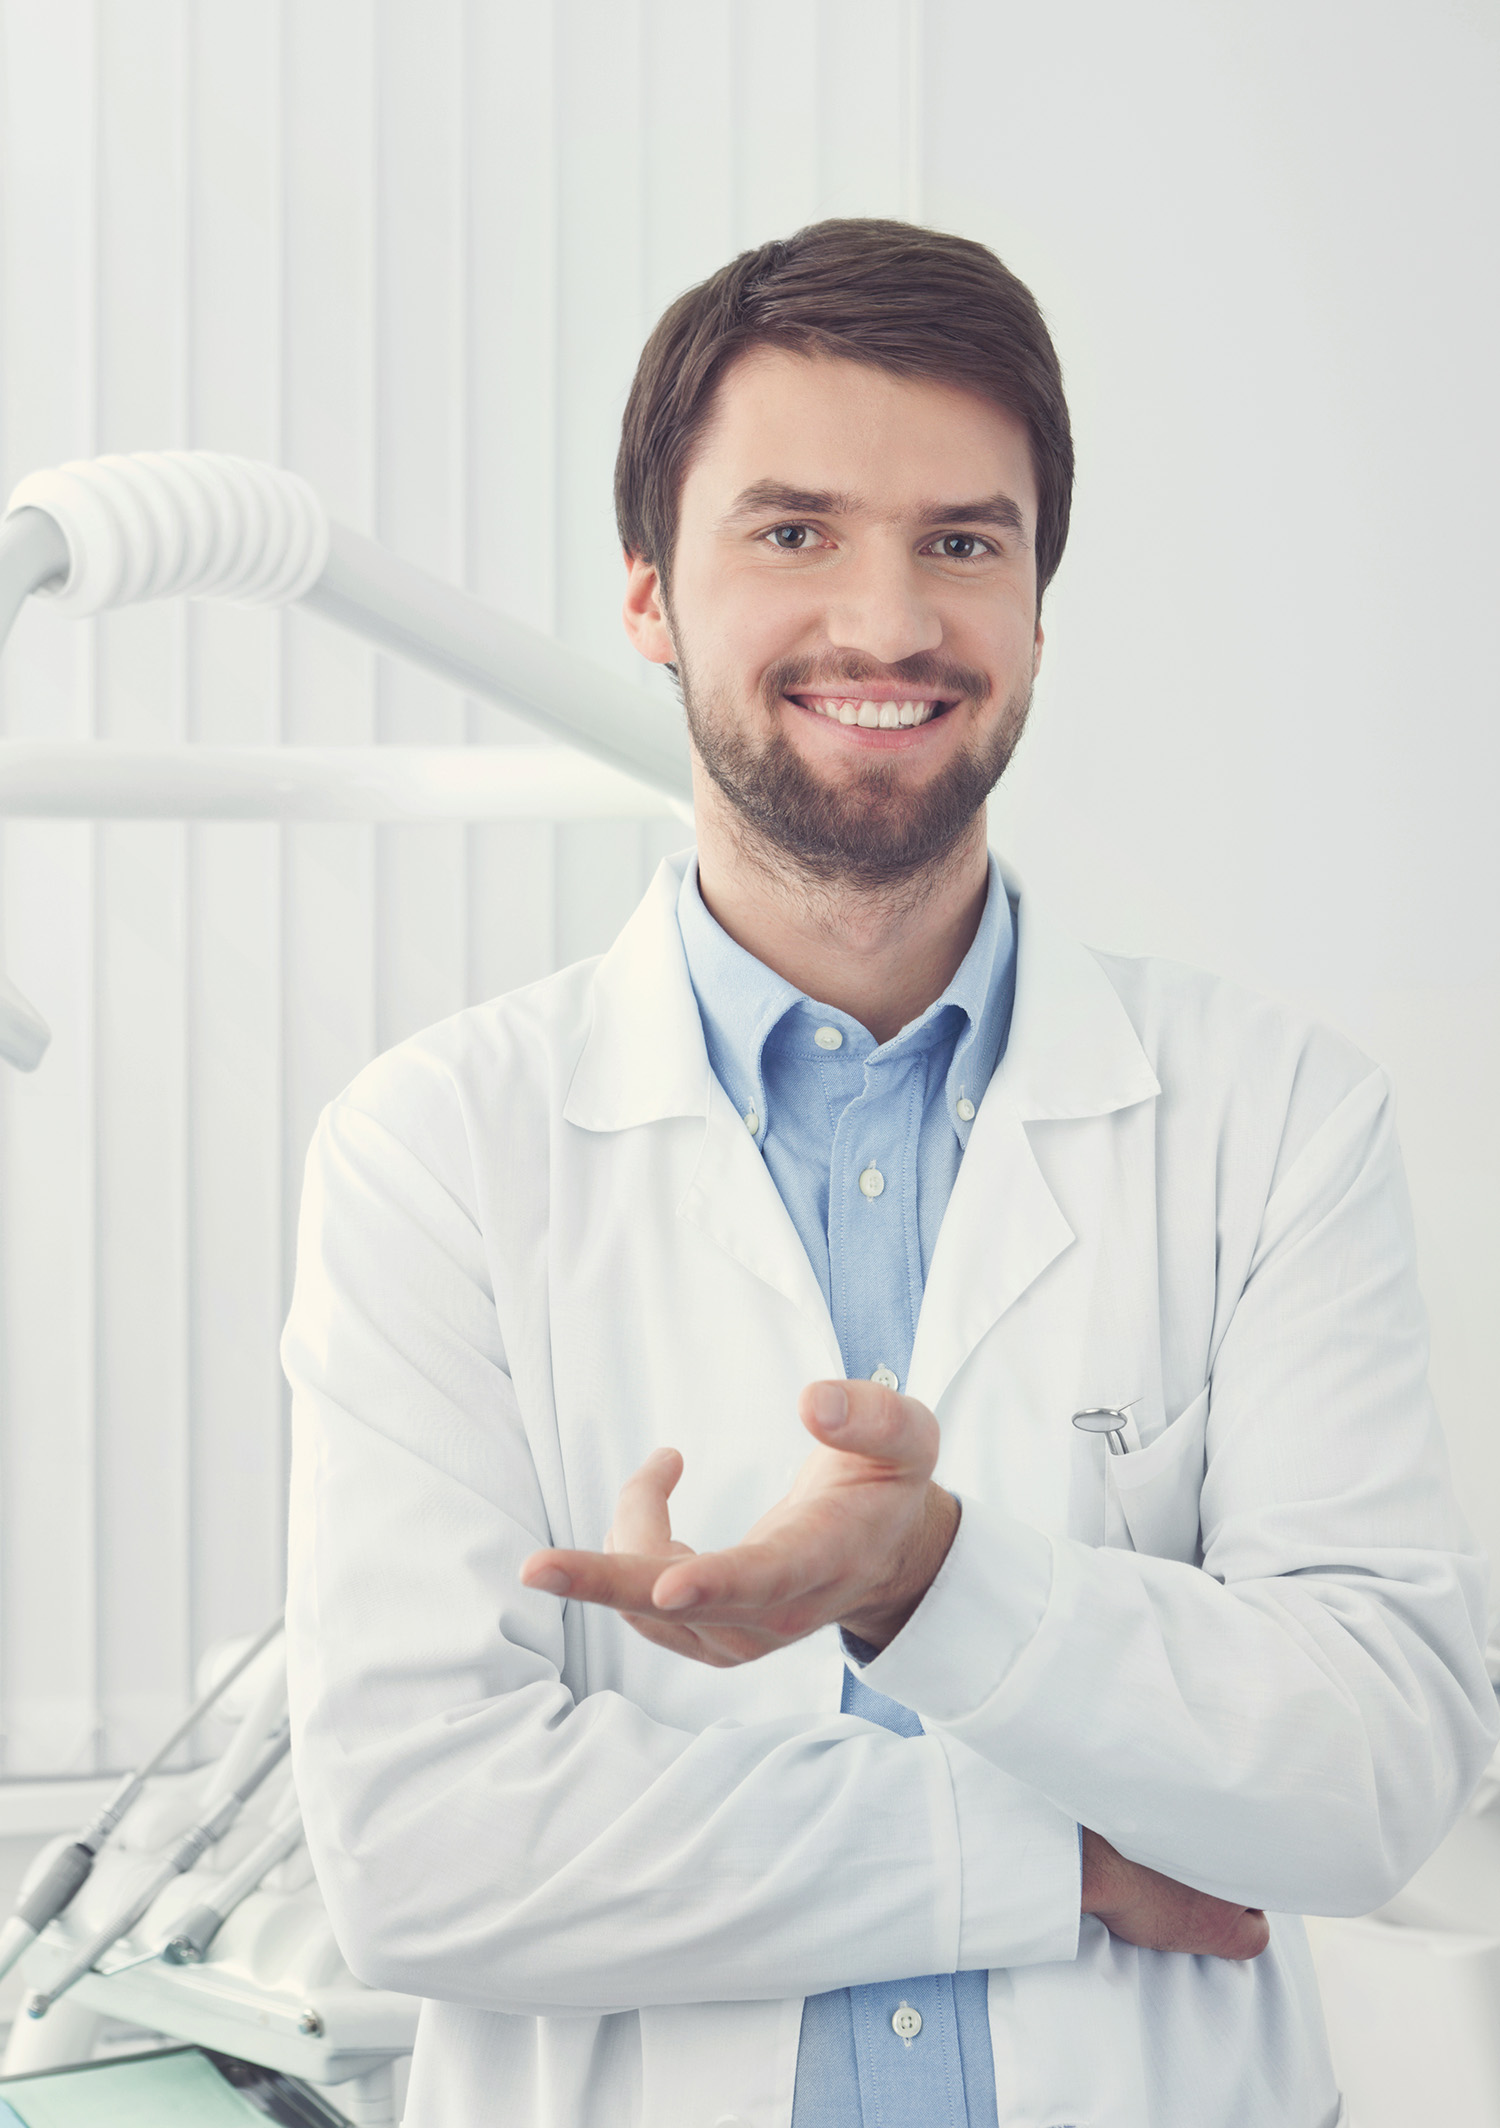 Smiley Doctor